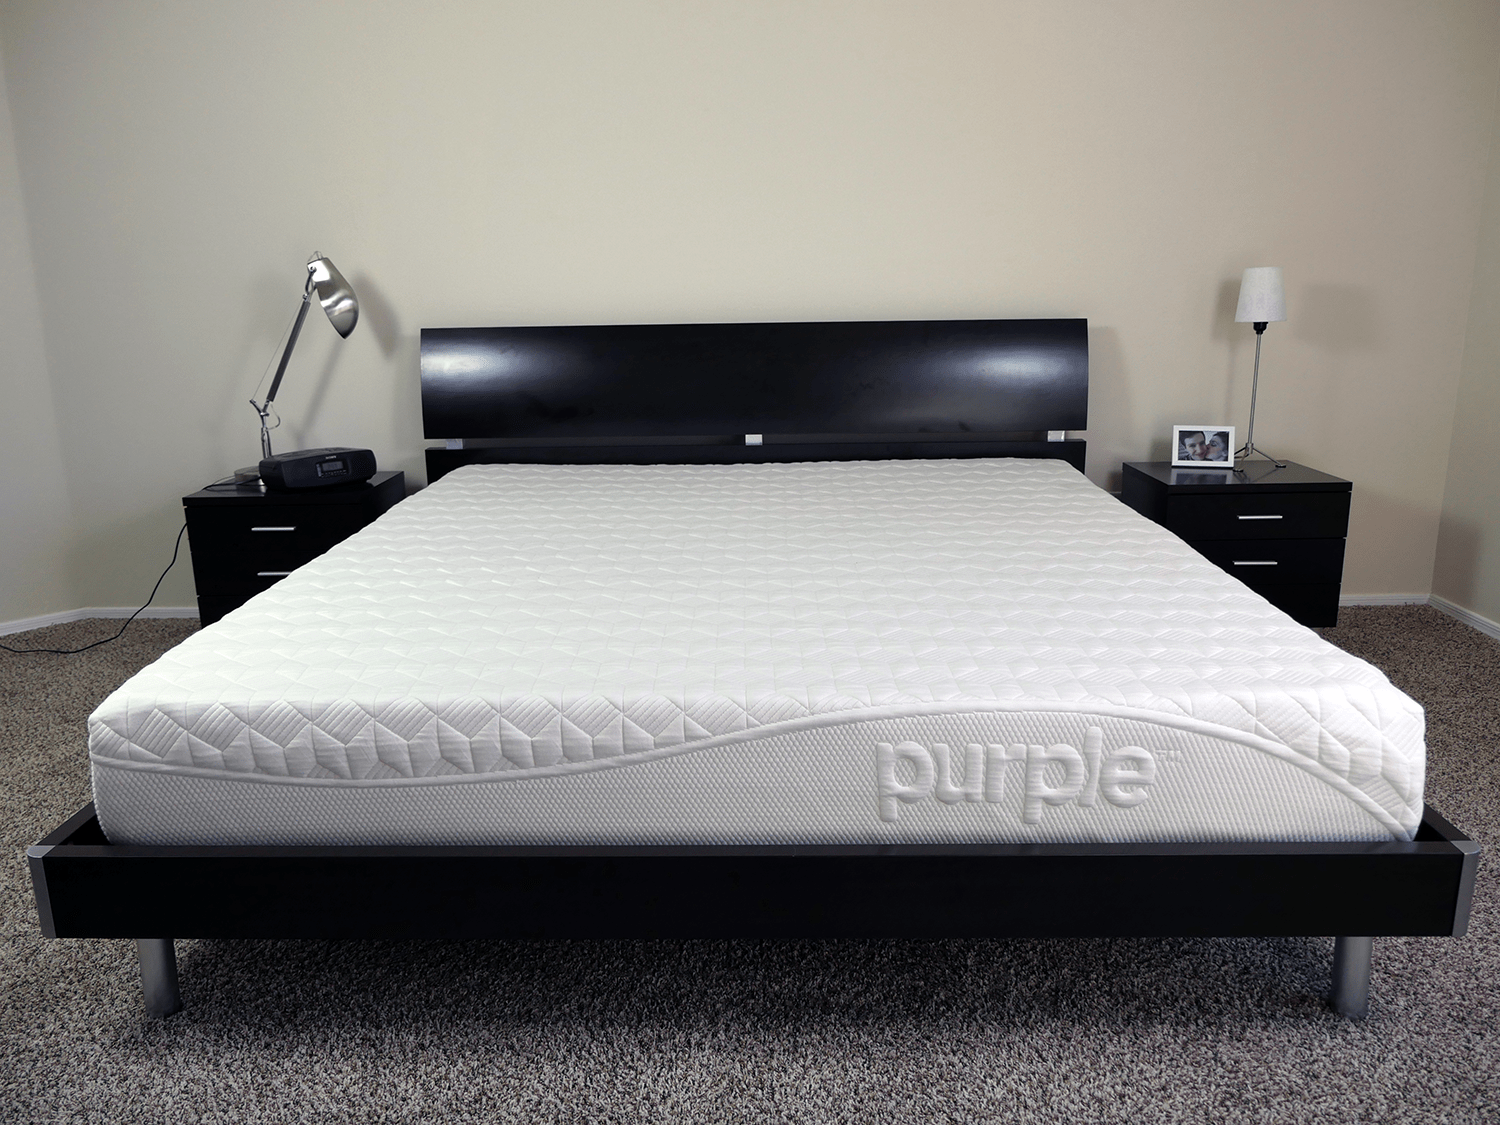 Purple mattress review sleepopolis for Brooklyn bedding vs tempurpedic